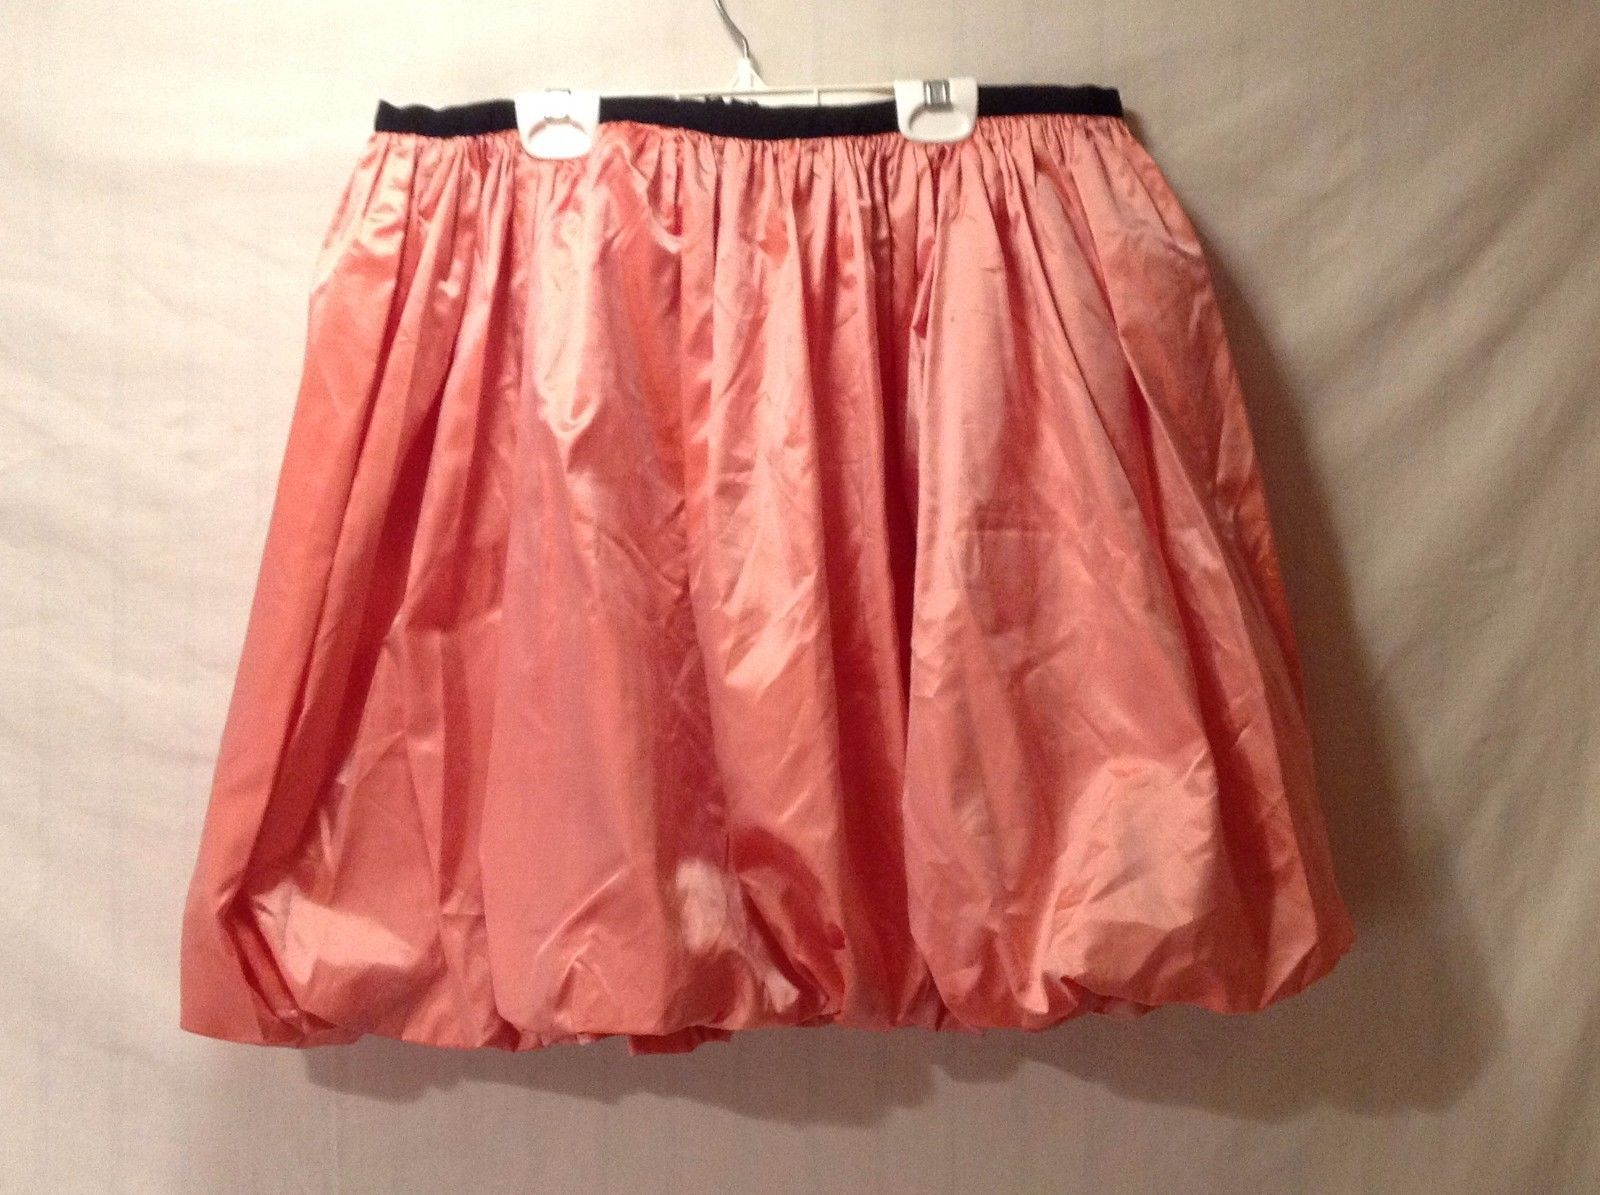 Preowned Excellent Condition Annie Walwyn-Jones Above Knee Skirt Salmon Small